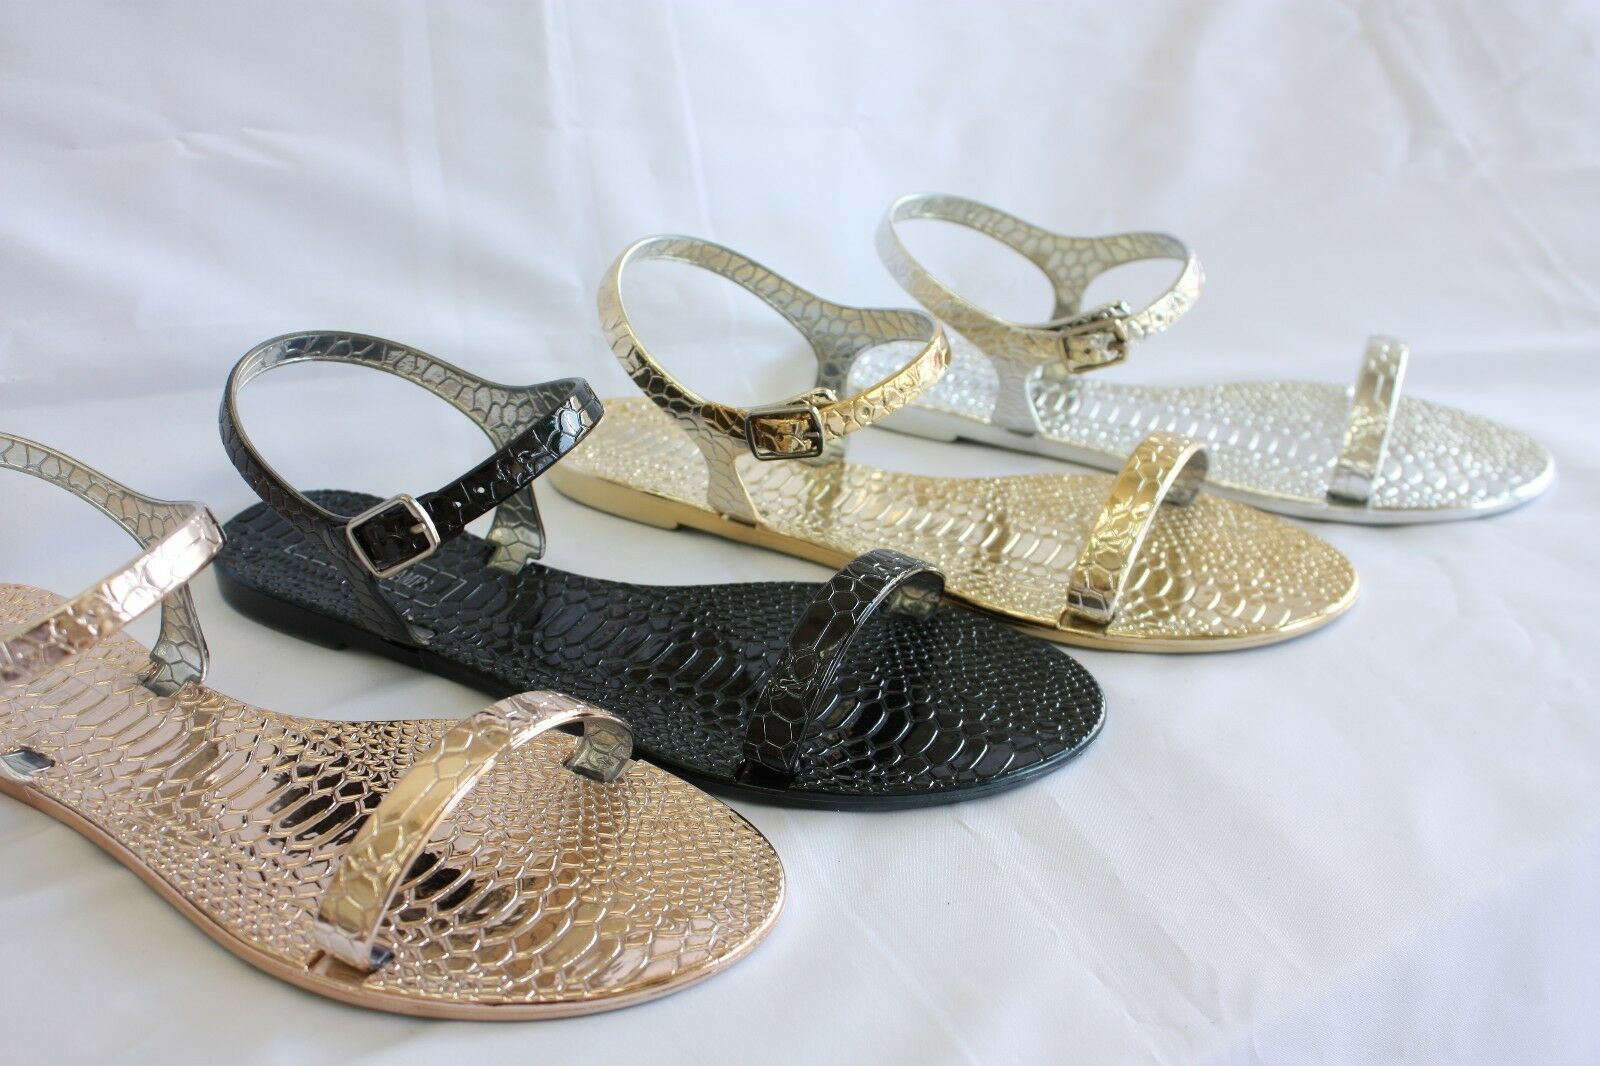 New Ankle Women BONAIRE Jelly Sandals Ankle New Strap Flats Gladiator 007586